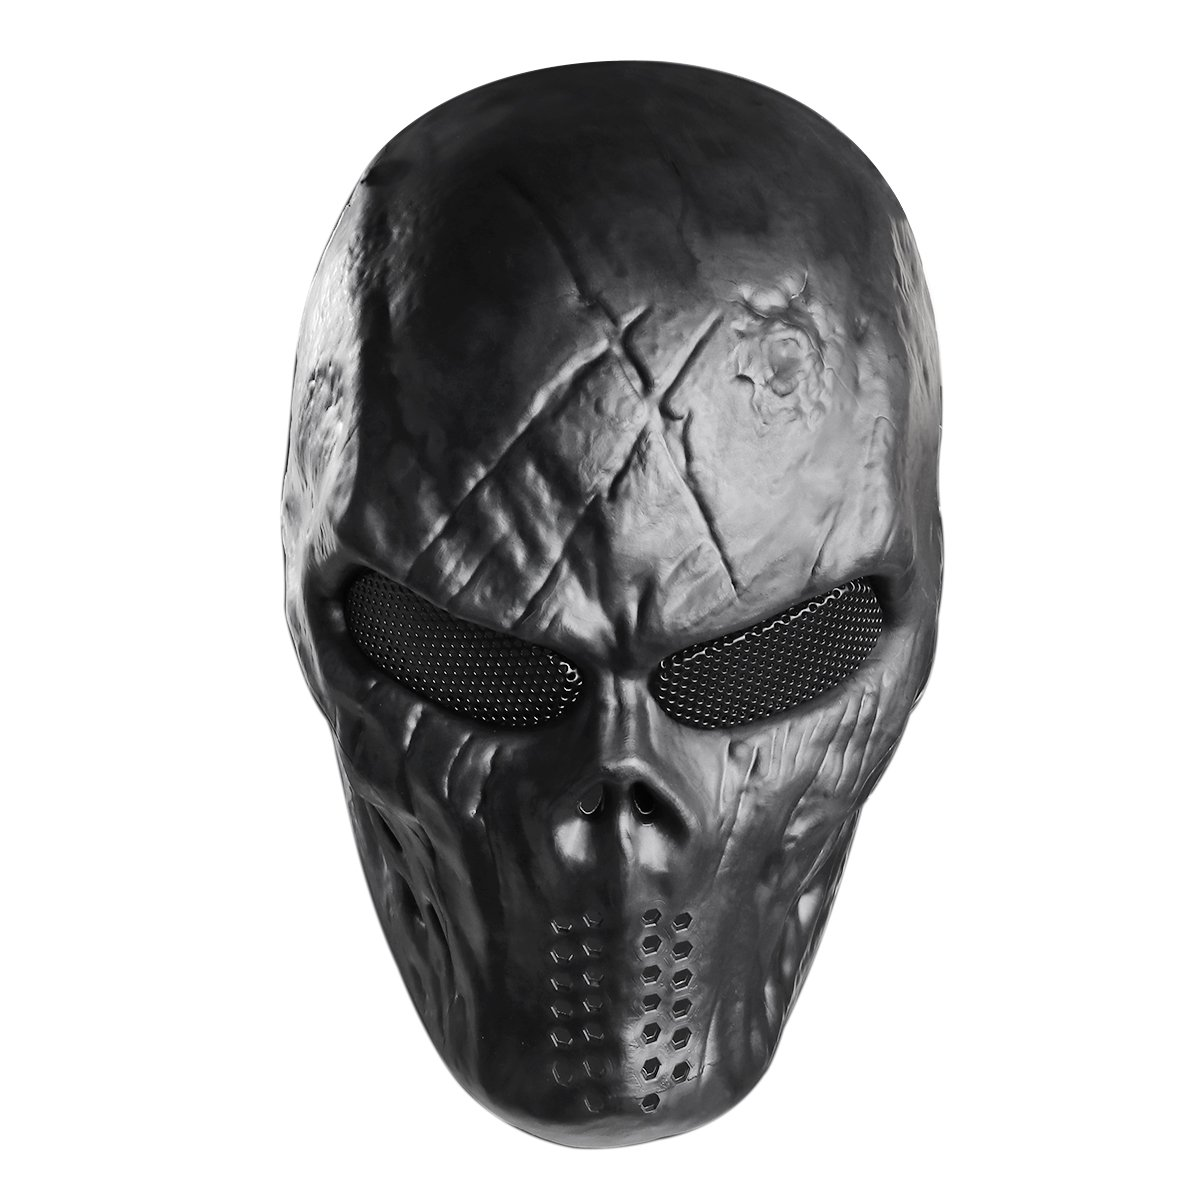 Unomor Halloween Mask Skull Mask Tactical Airsoft Mask with Metal Mesh Eyes Protection - Black